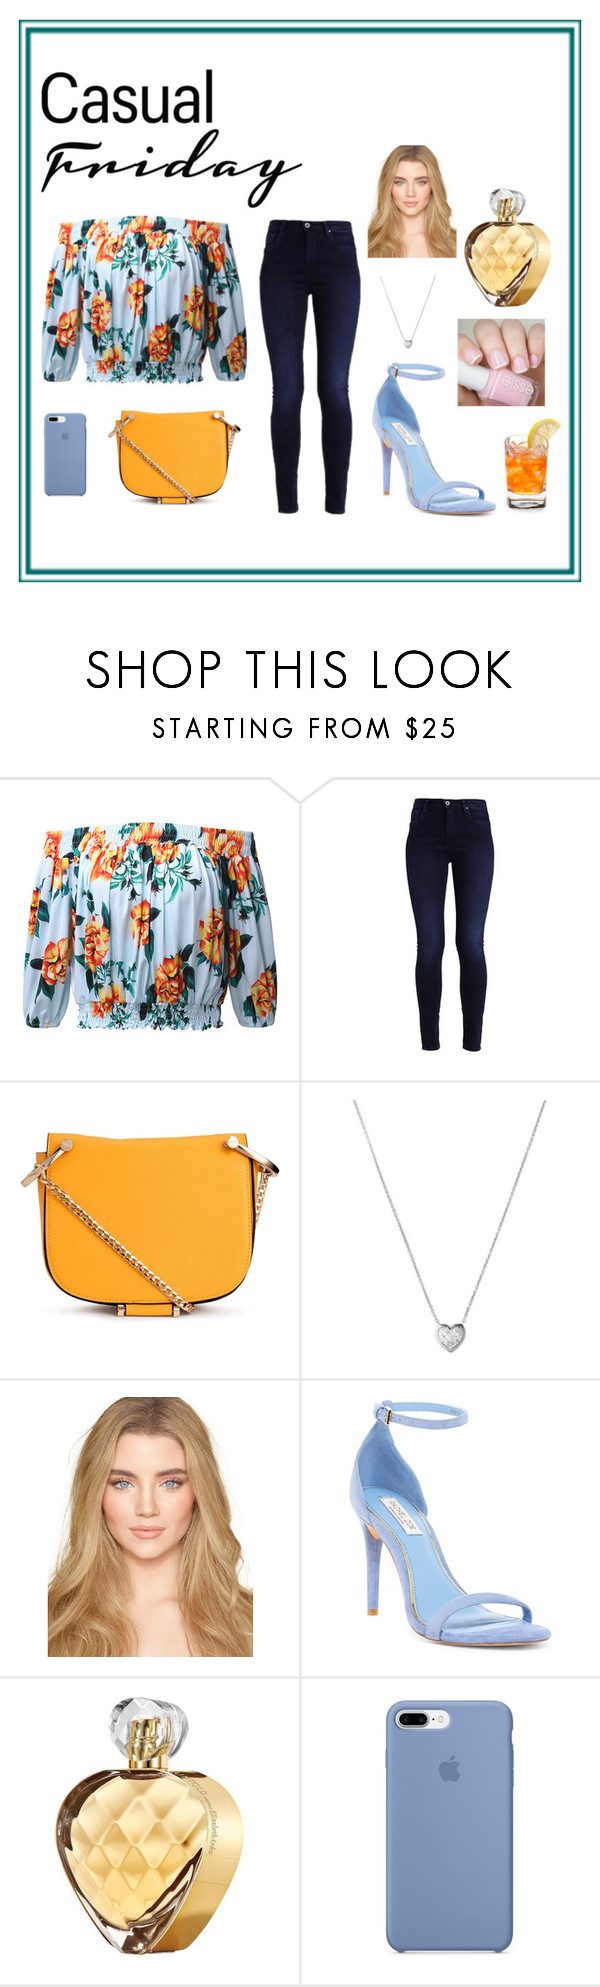 """Untitled #34"" by fashionnmia on Polyvore featuring Links of London, Rachel Zoe and Elizabeth Arden"